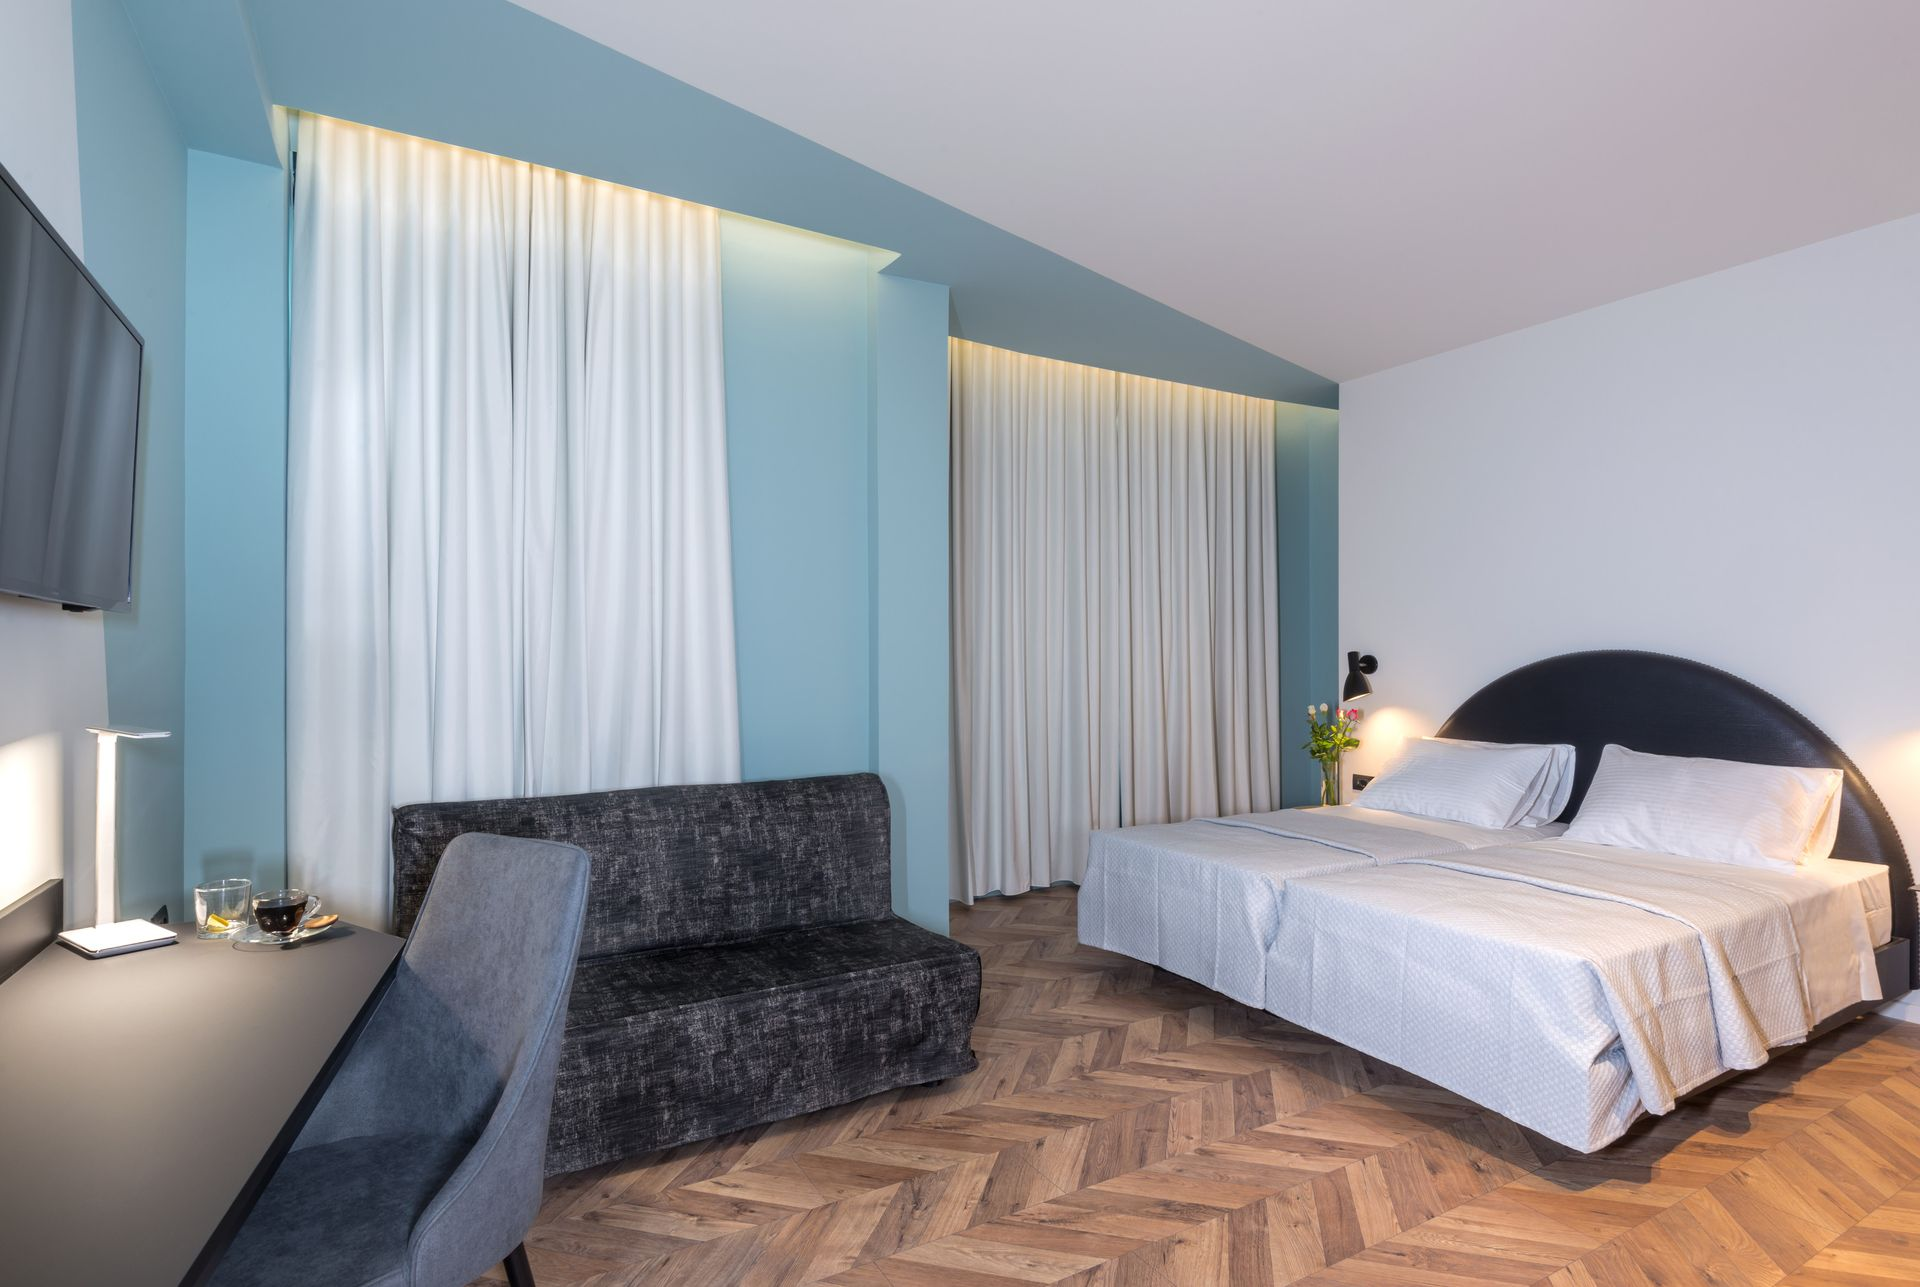 4* Athens One Smart Hotel - Αθήνα ? 2 Ημέρες (1 Διανυκτέρευση) ? 2 άτομα ? Πρωινό ? έως 30/09/2020 ? Free WiFi